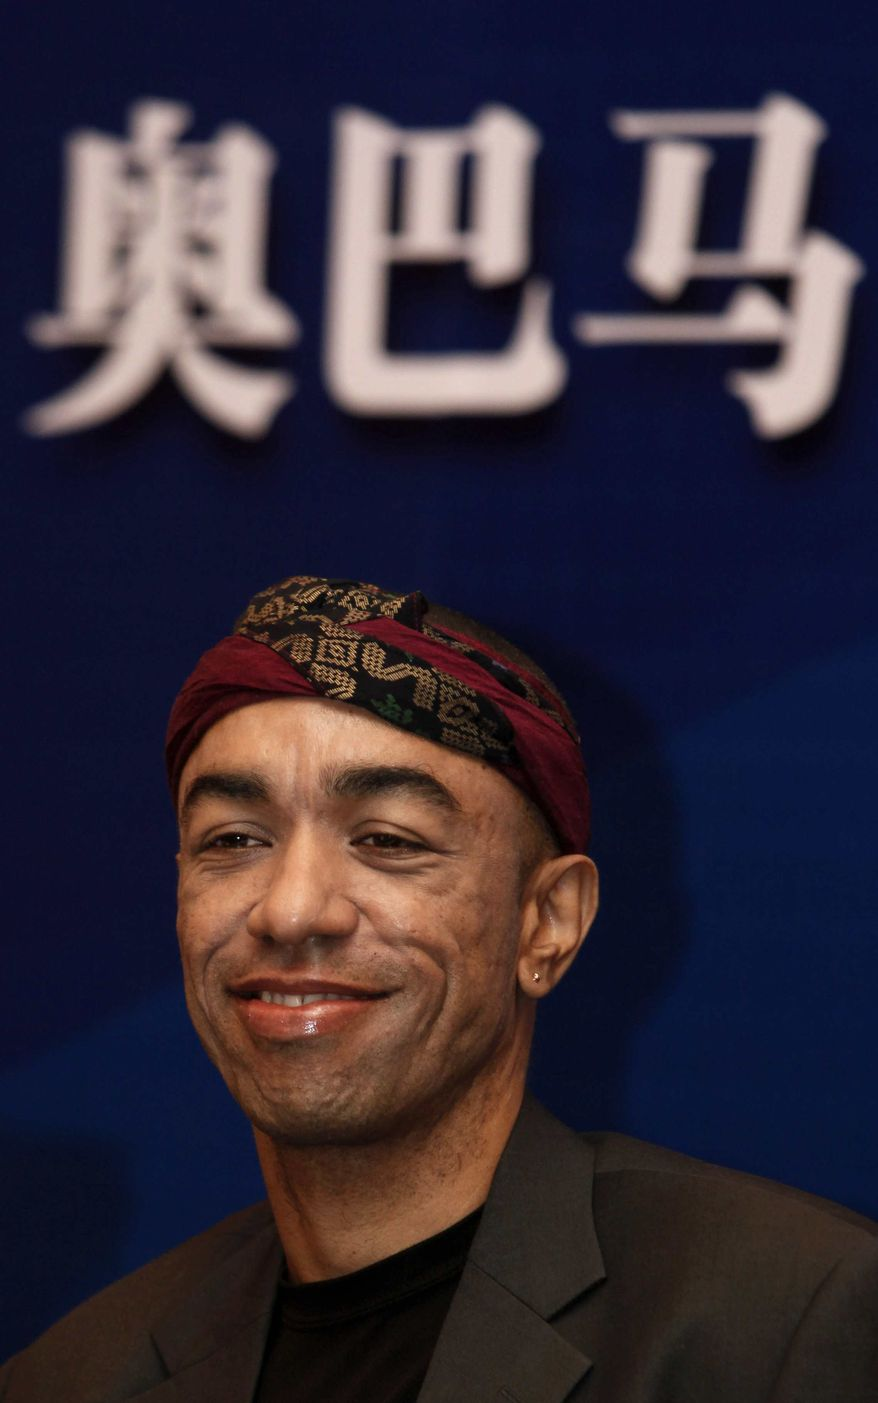 "Mark Ndesandjo, one of President Barack Obama's half-siblings, attends a news conference for his new book ""Nairobi to Shenzhen"" with the background written ""Obama"" in Chinese characters, in Guangzhou, southern city of China Wednesday, Nov. 4, 2009. (AP Photo/Kin Cheung)"